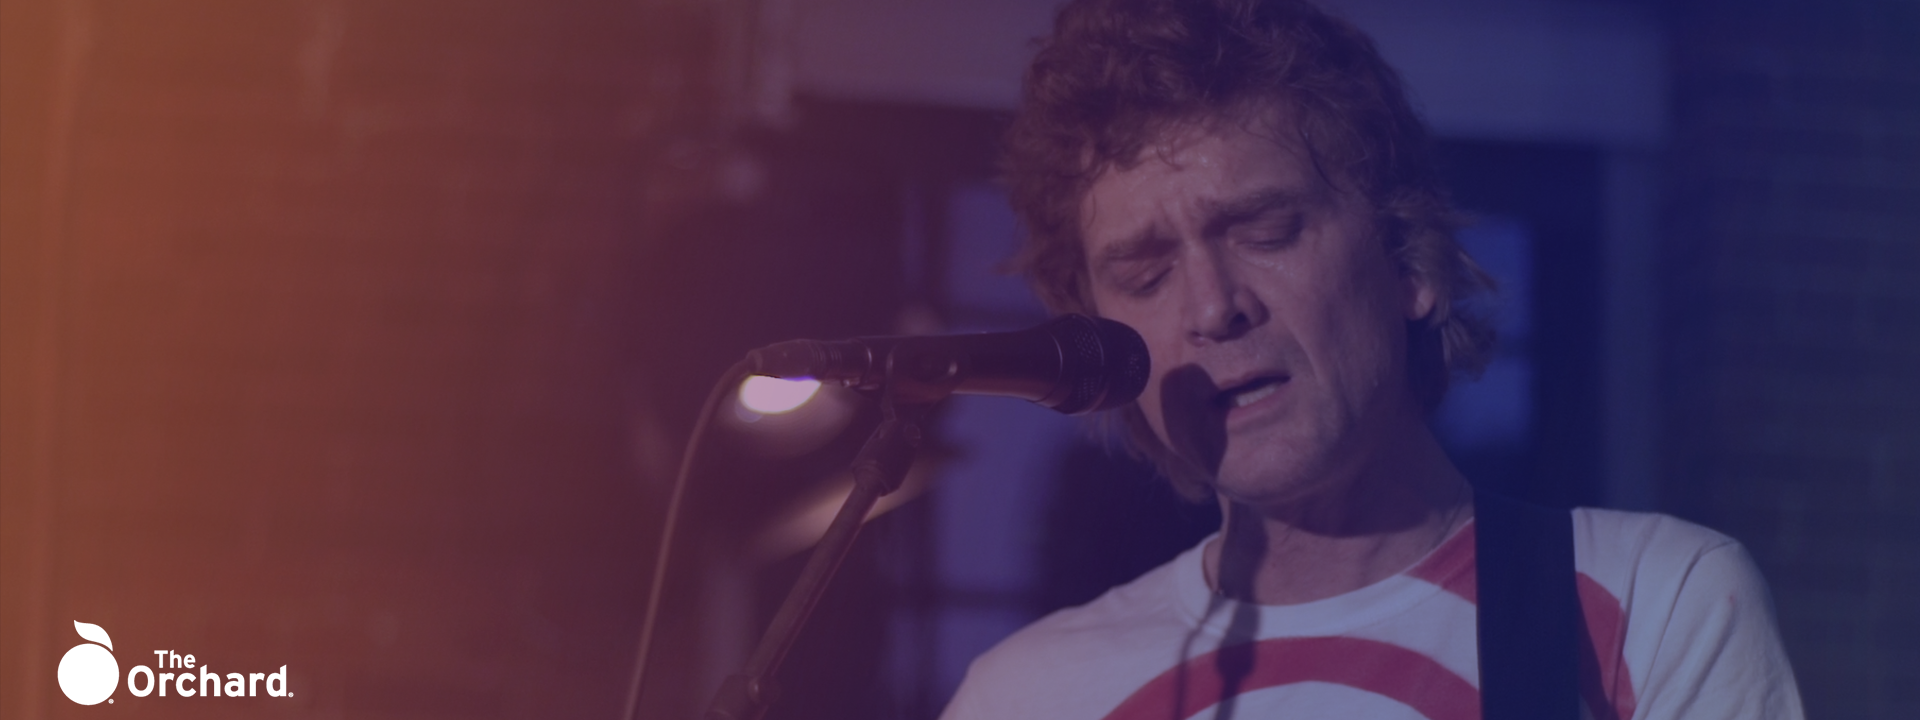 The Orchard Presents: Brendan Benson